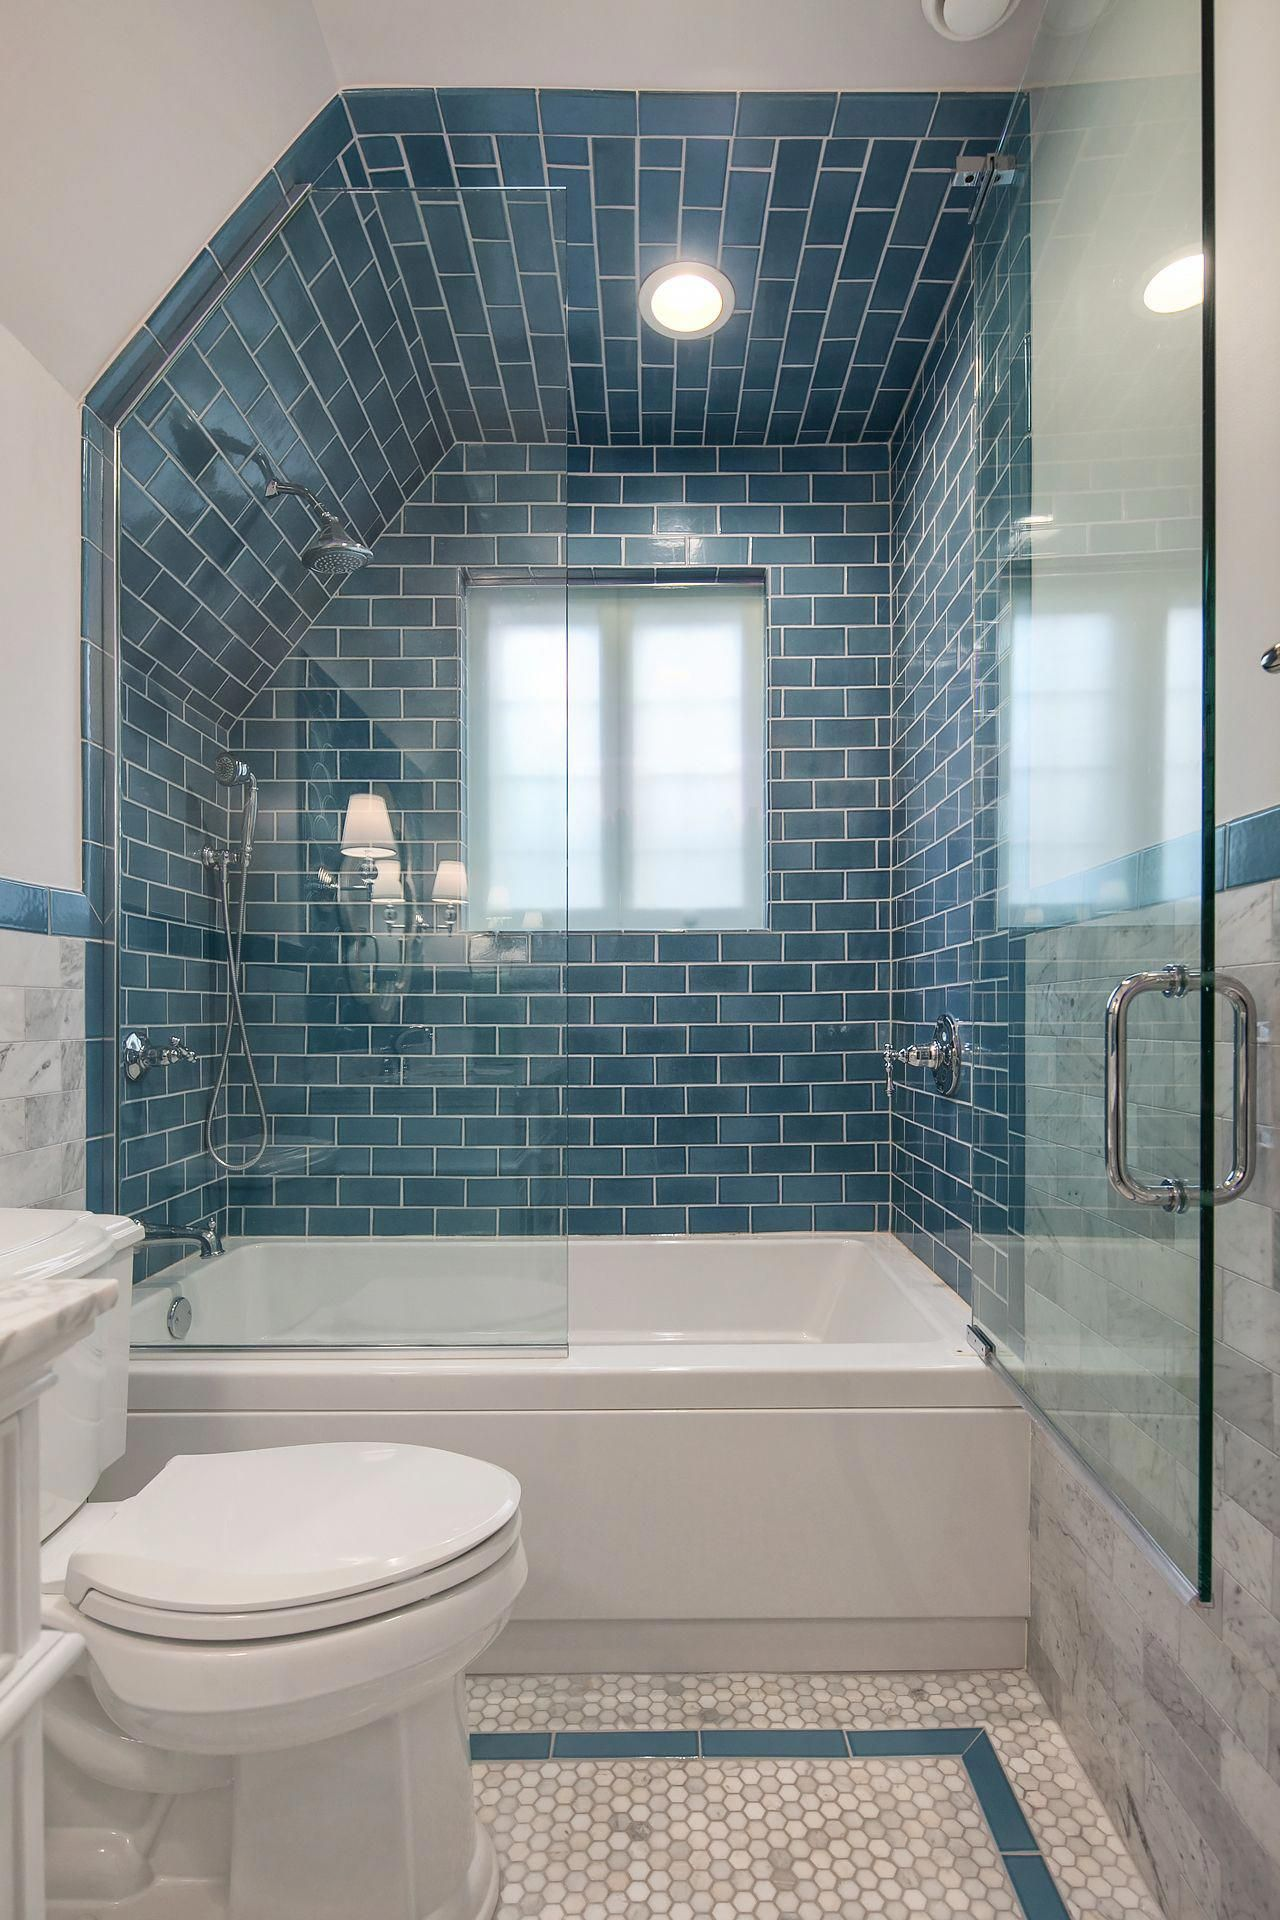 Tips Before Buying Vanity Cabinets For Your Bathroom In 2020